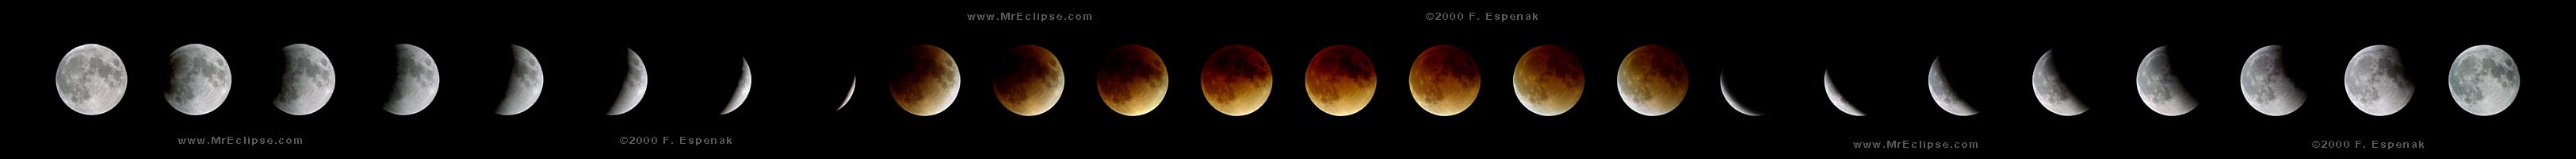 2000 Total Lunar Eclipse